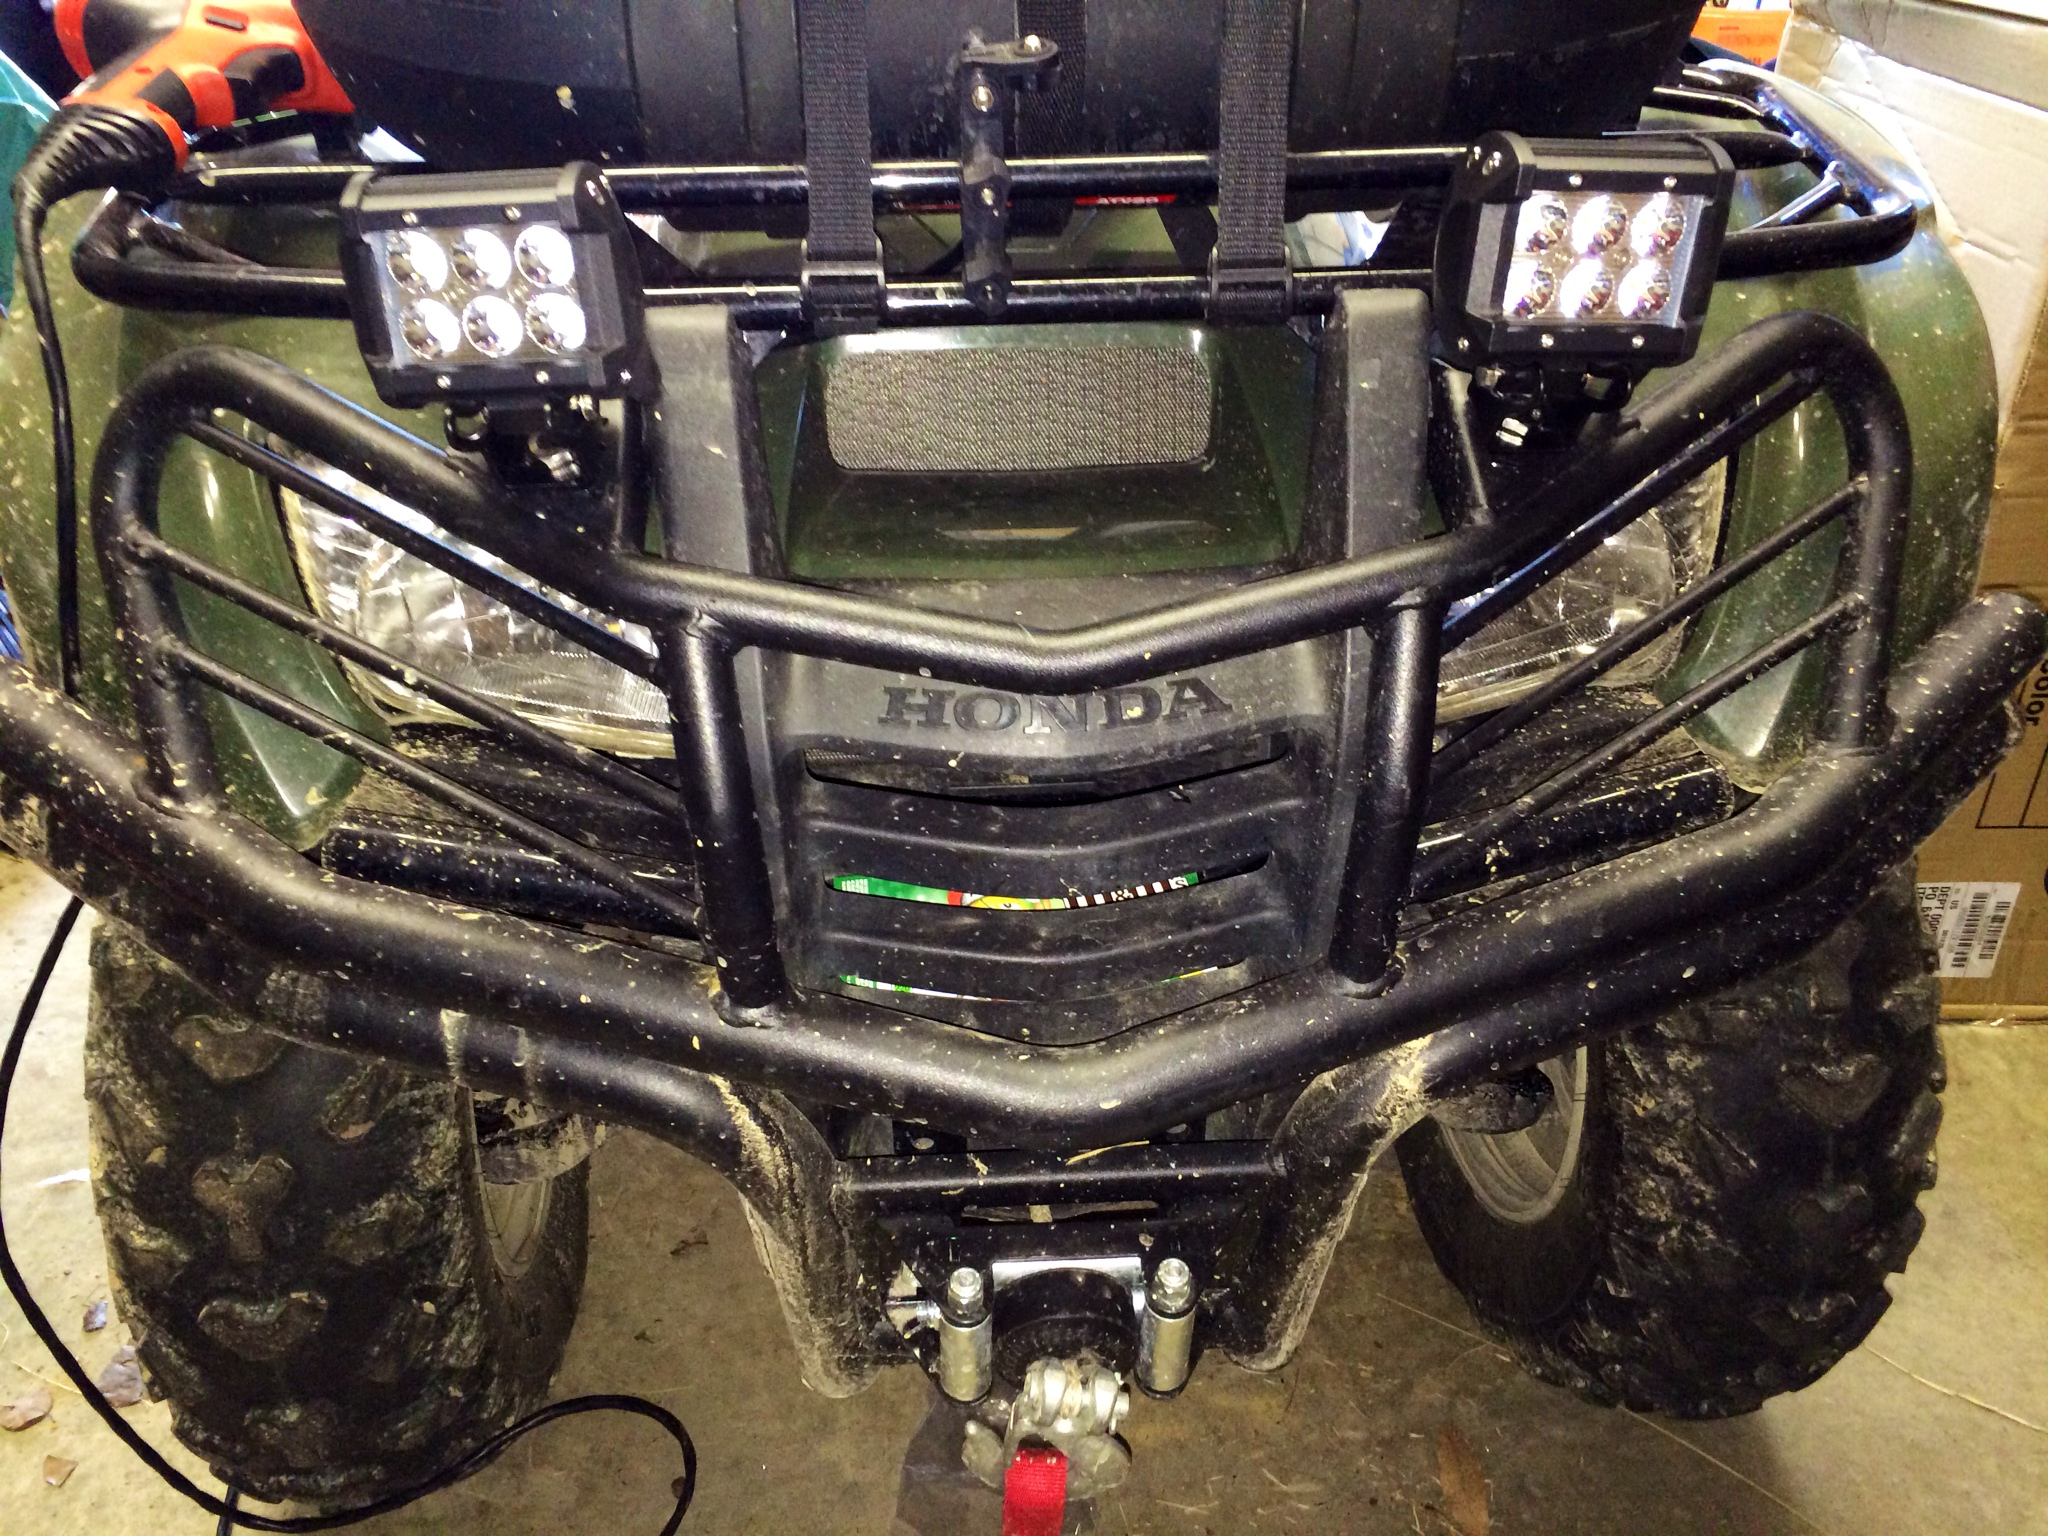 Led lights how to honda atv forum click the image to open in full size aloadofball Choice Image